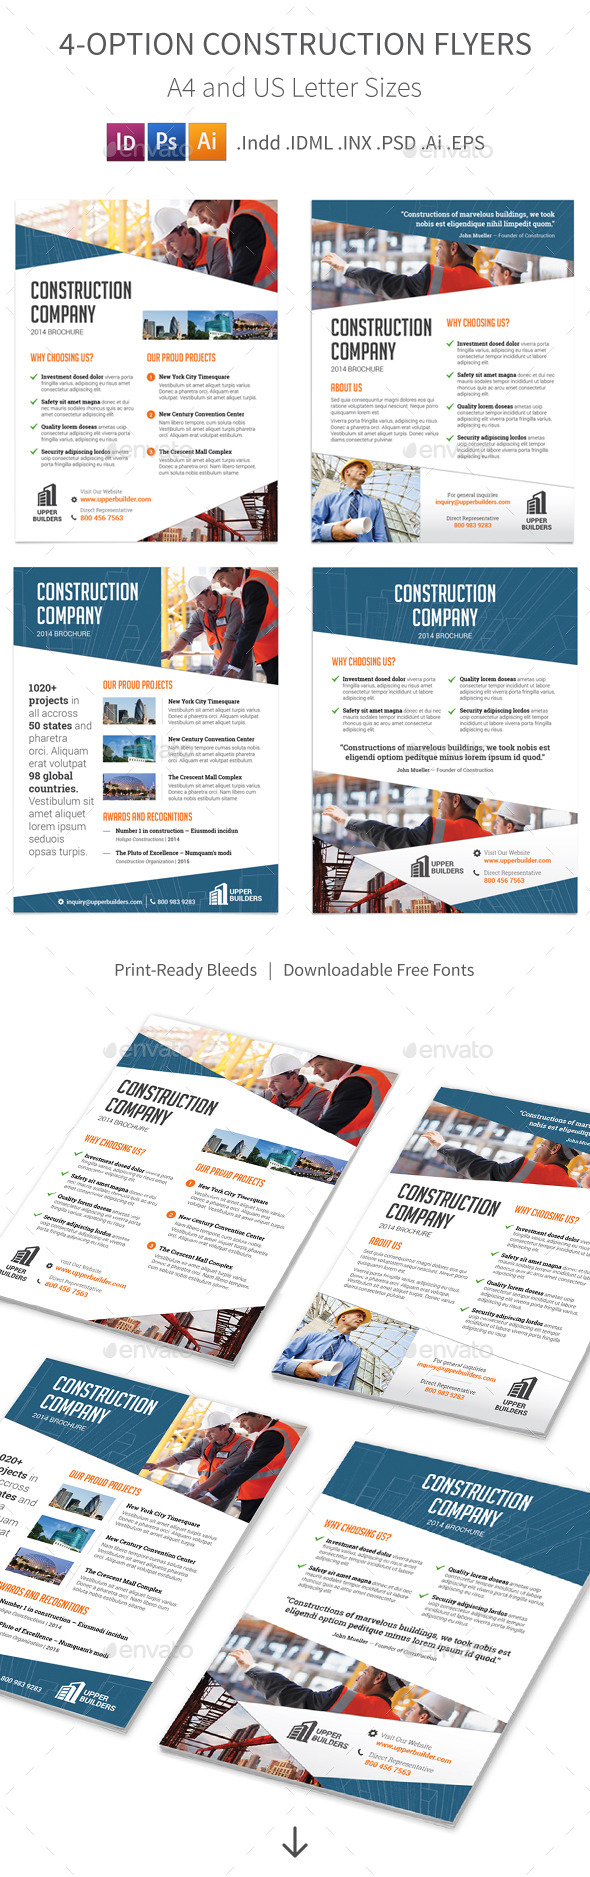 Construction Company Flyers – 4 Options - Corporate Flyers